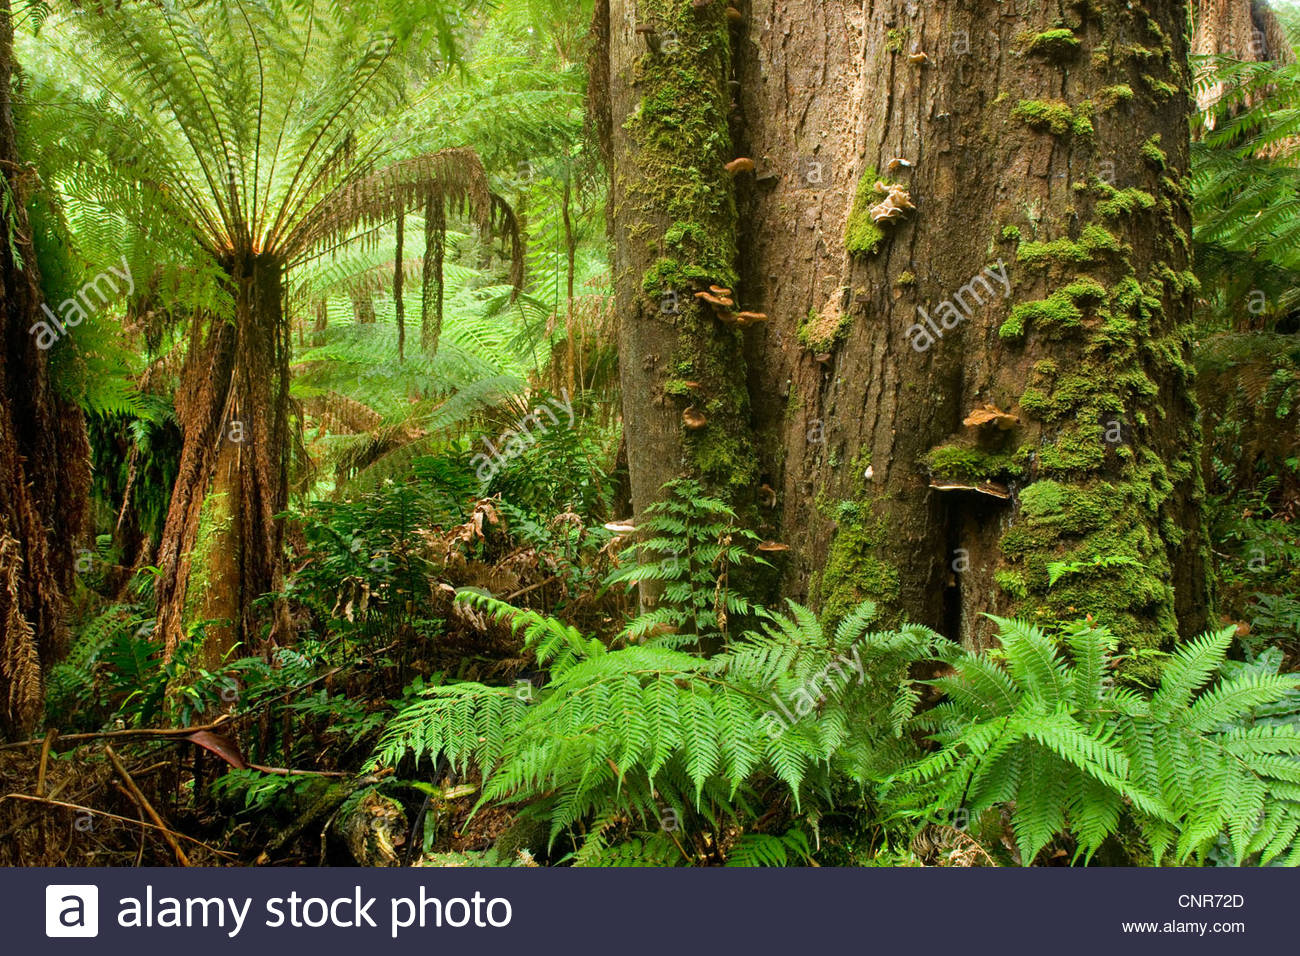 Myrtle Beech (Nothofagus cunninghamii), Temperate rainforest - lush temperate rainforest with Myrtle Beeches, and - Stock Image